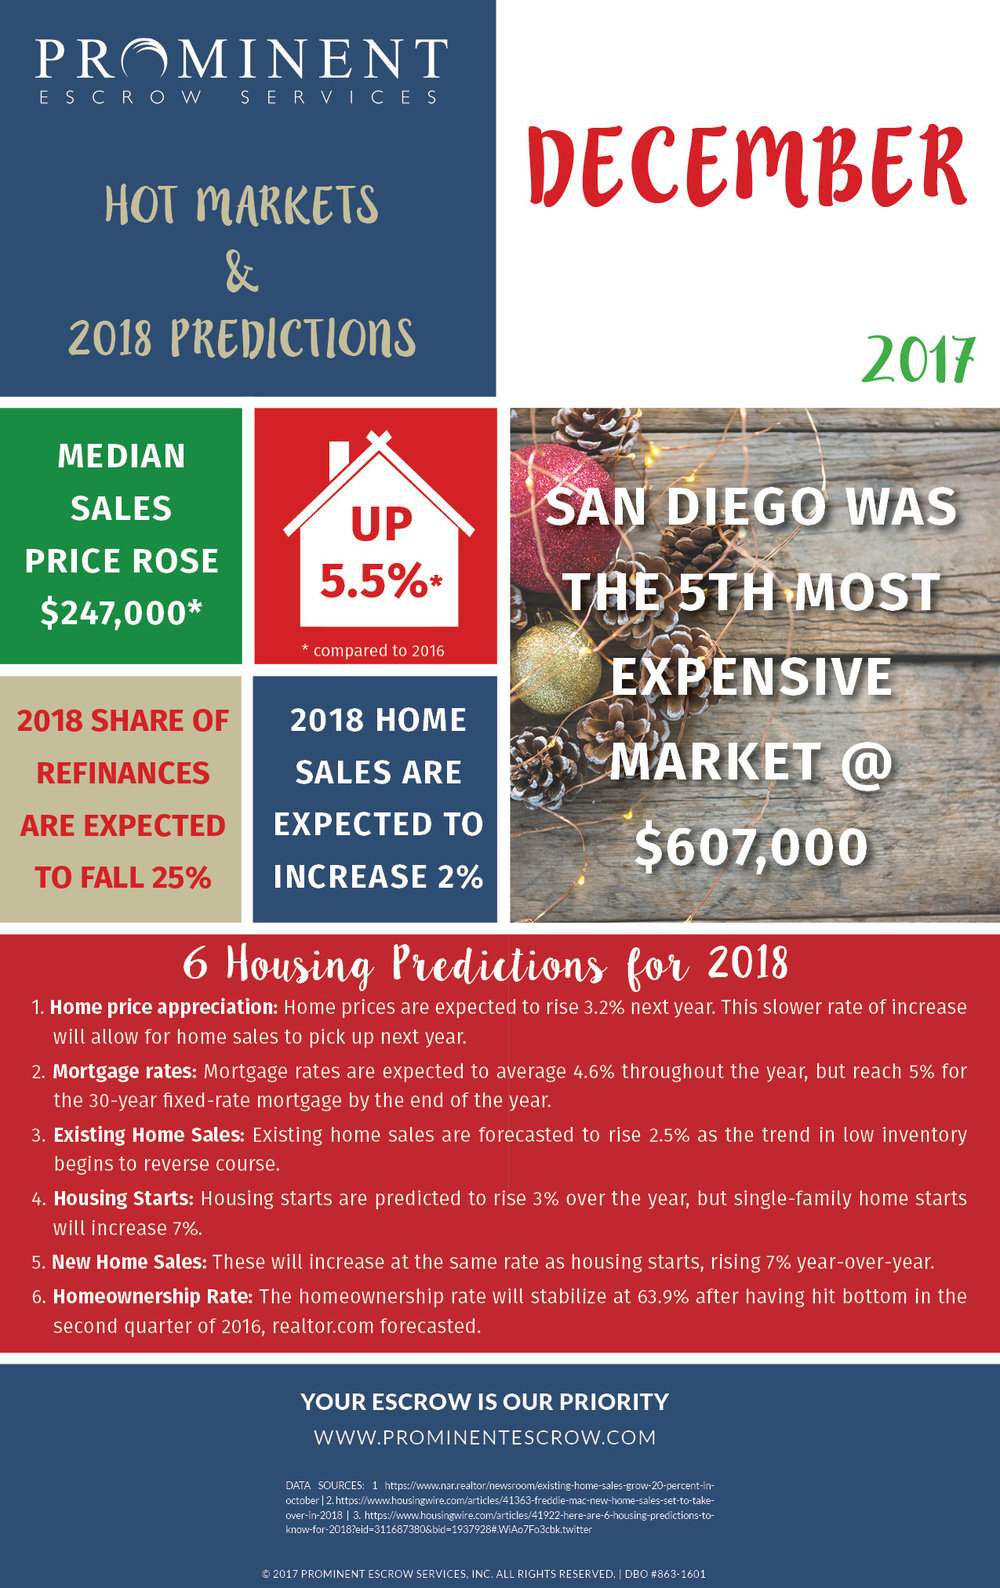 12-1-17 Hot-Markets2018Predictions-Dec-SD.jpg